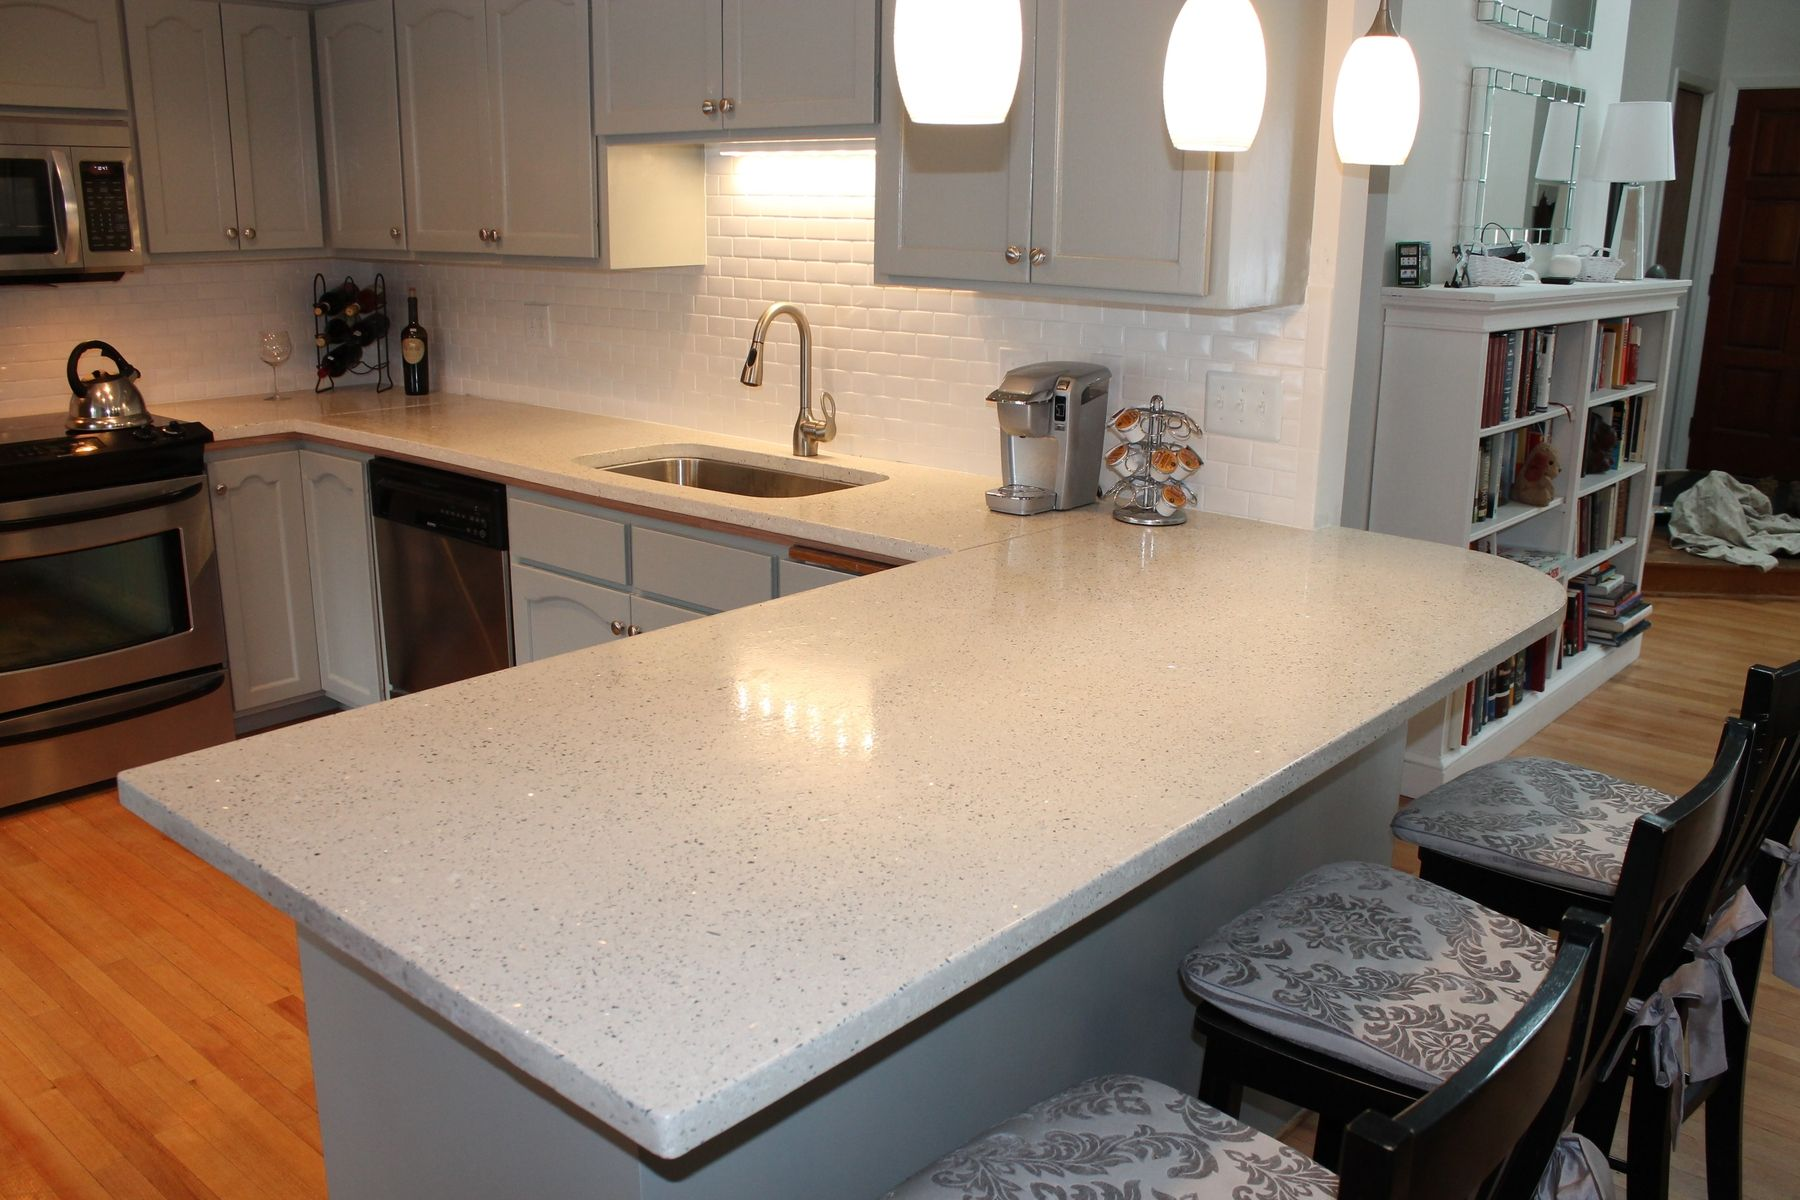 Concrete Countertops | Handmade Hand Made Concrete Countertop By The  Concrete Moon .